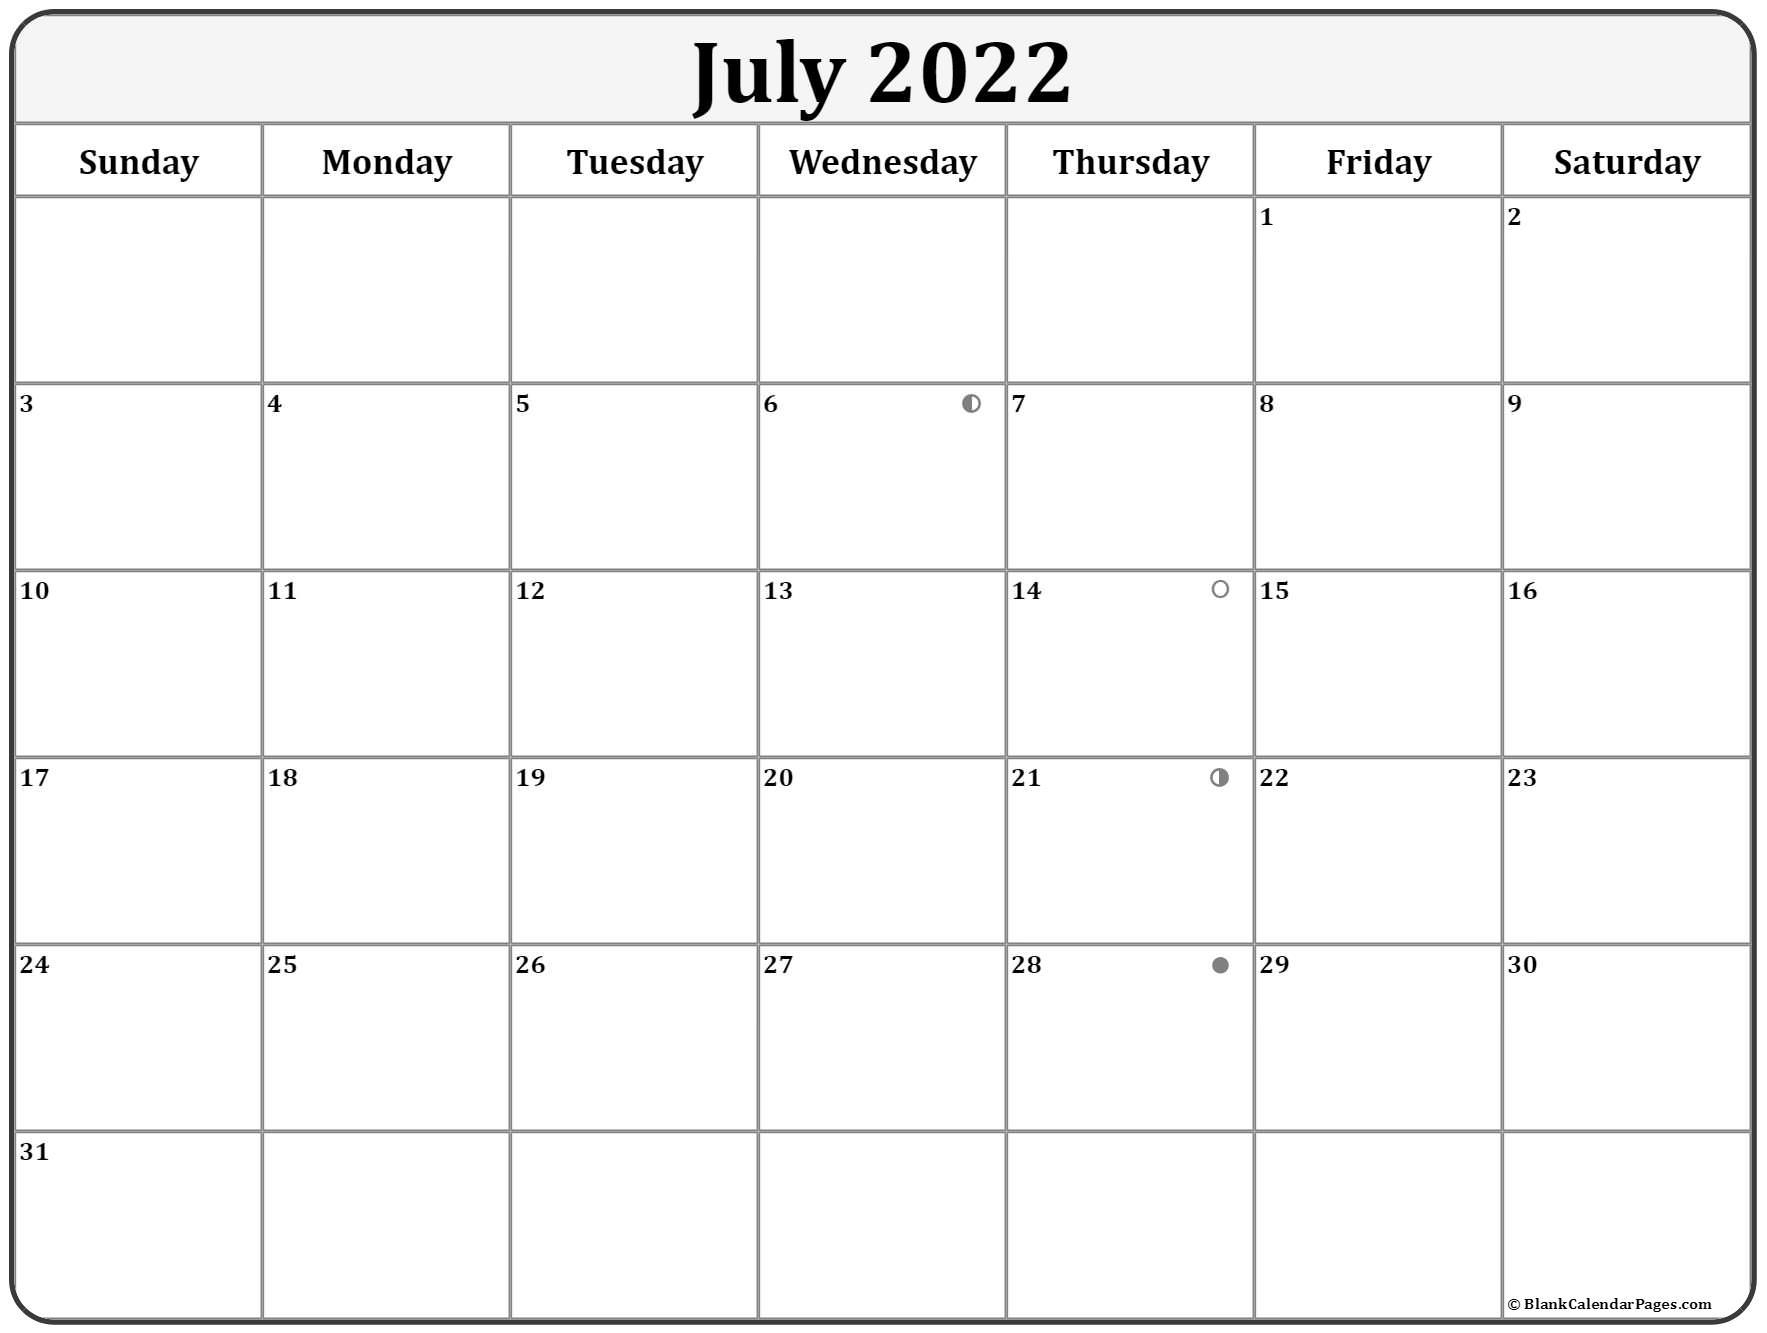 July 2022 Lunar Calendar | Moon Phase Calendar